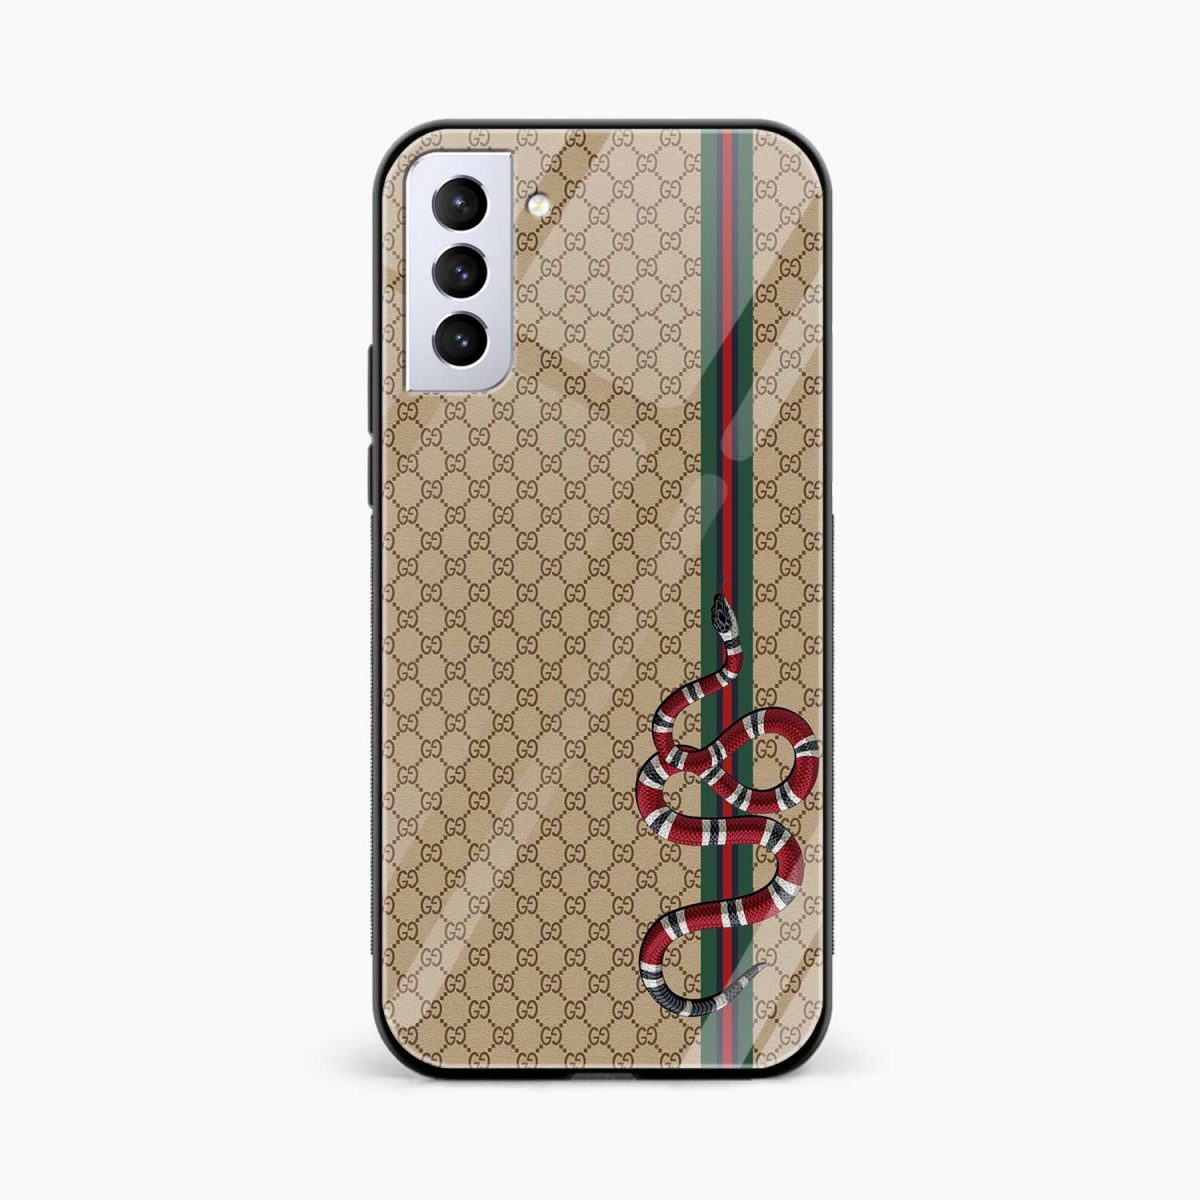 gucci snake pattern front view samsung s21 plug back cover